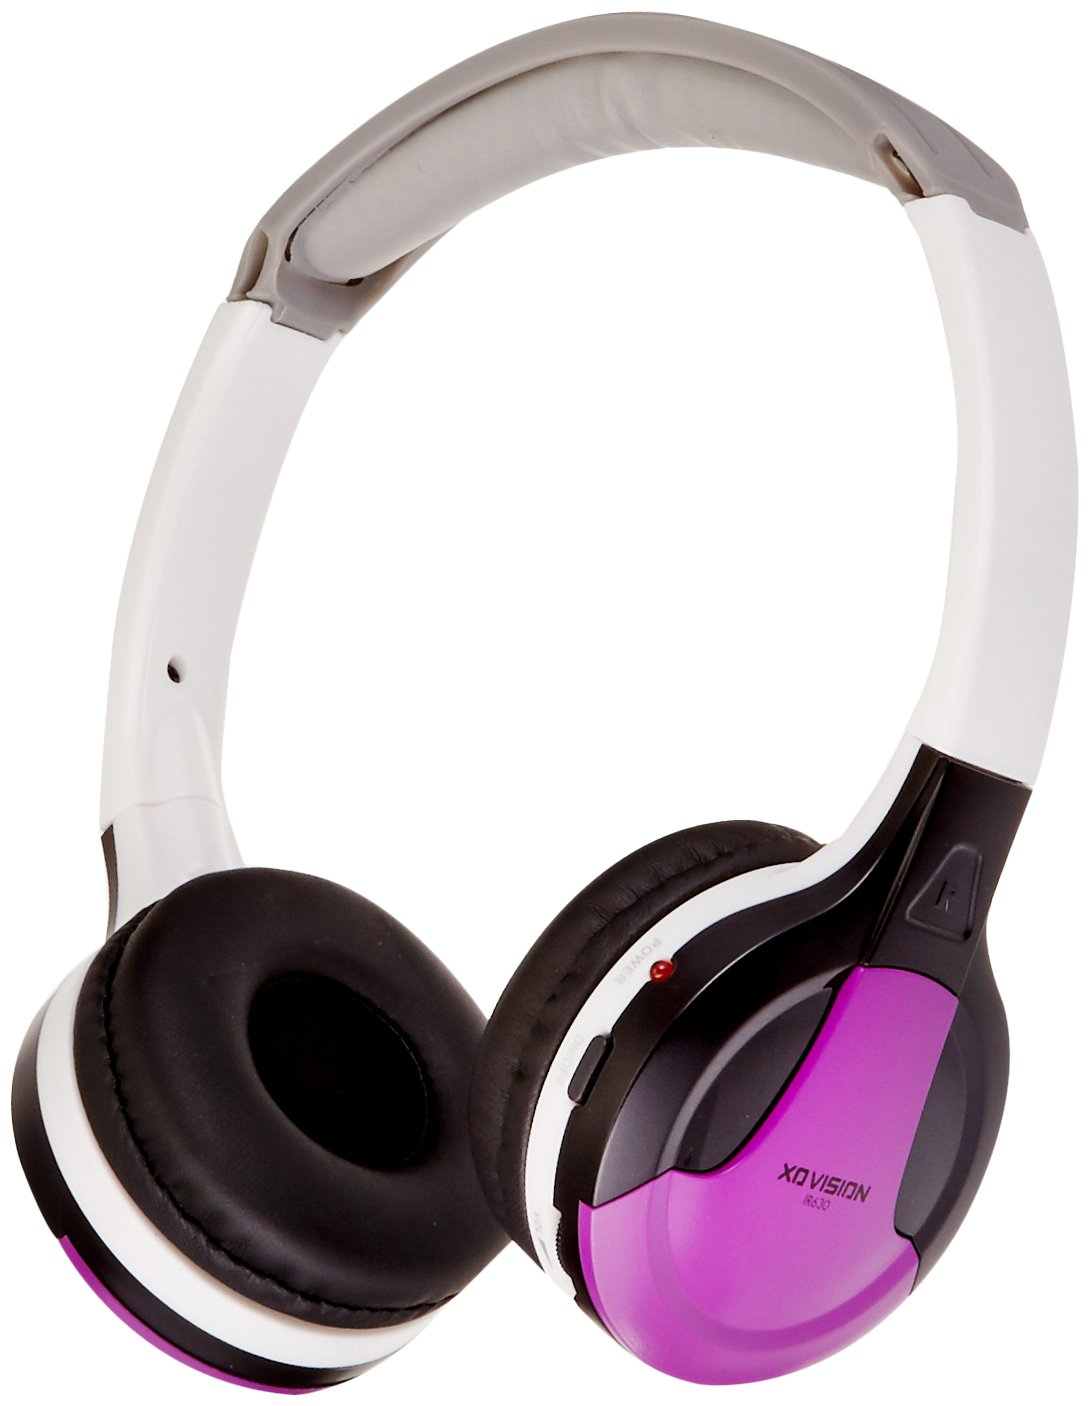 XO Vision  Universal IR Headphones - In-Car Wireless Foldable Headphones, DVD Player, In-Car System, Custom Fit, Wireless Entertainment by XO Vision